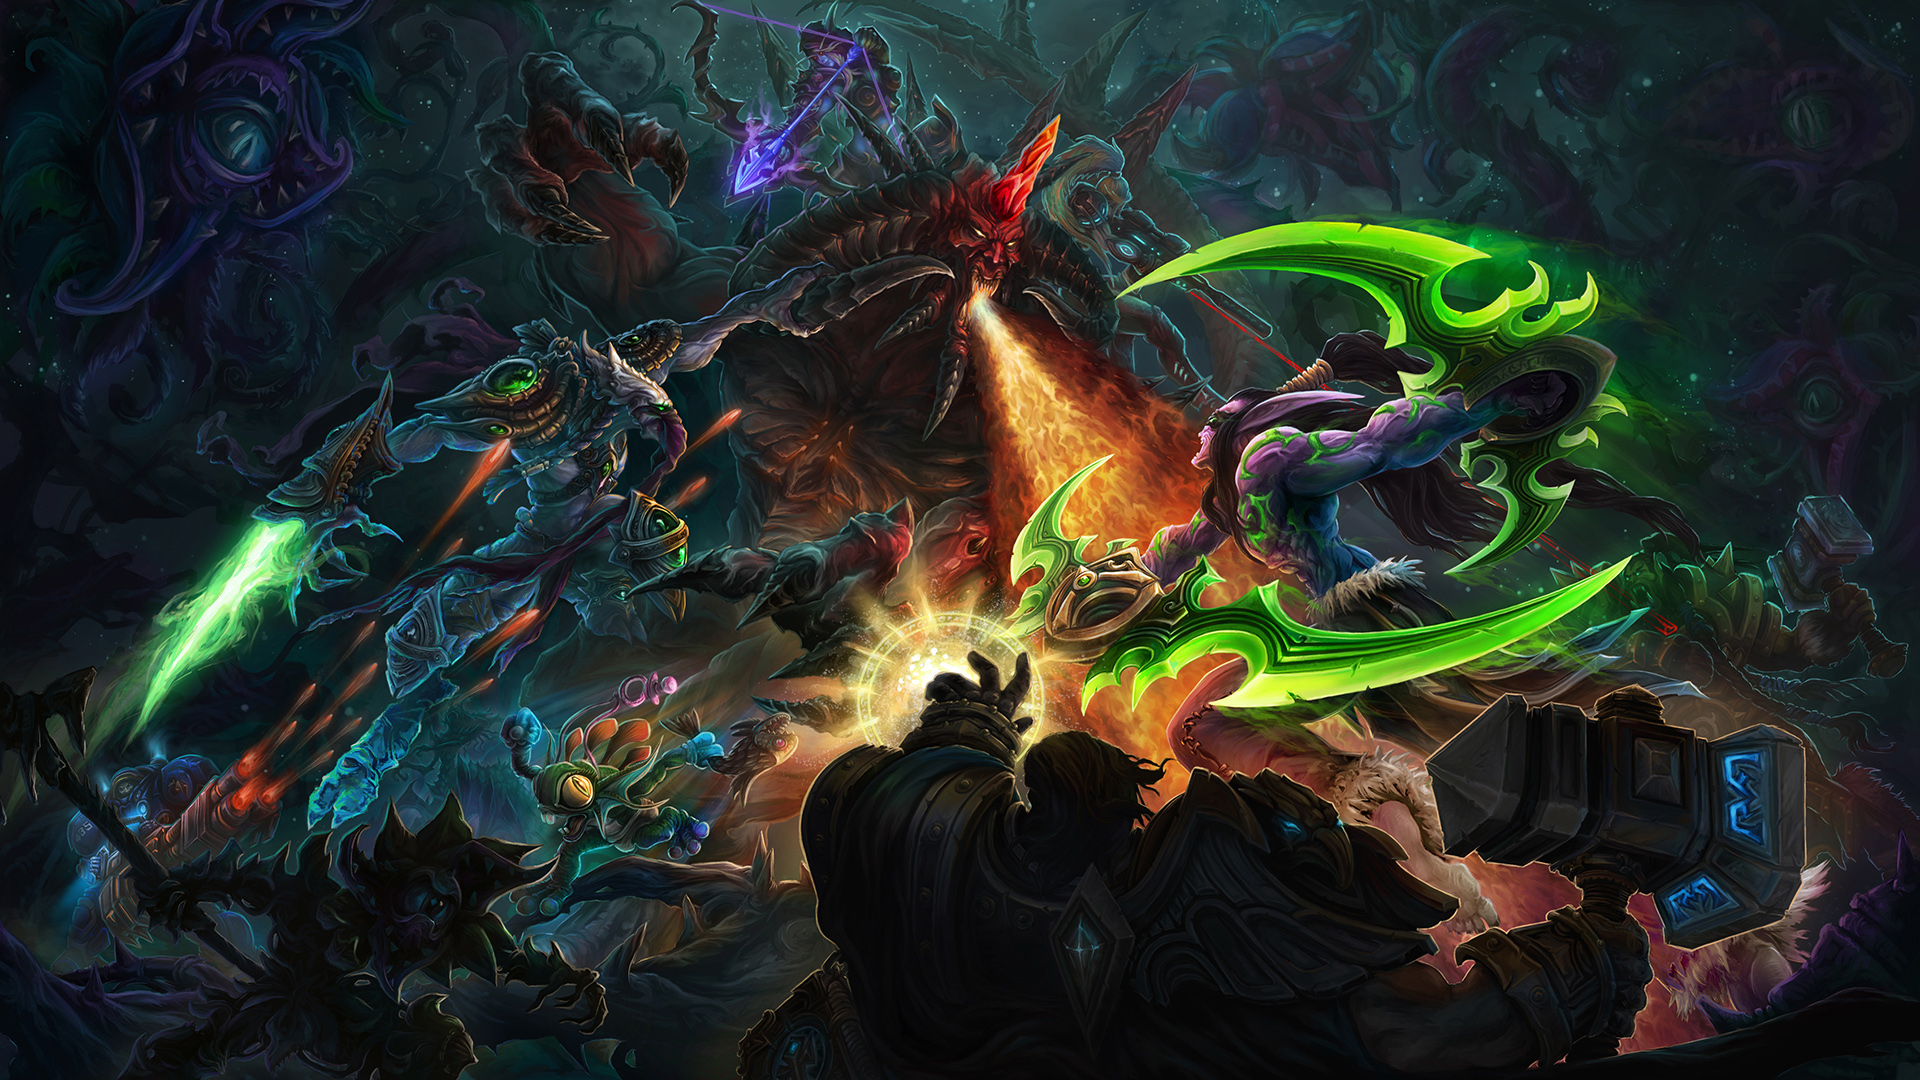 a_glimpse_of_hots_epic_universe_by_iosifchezan-d8yiuc8